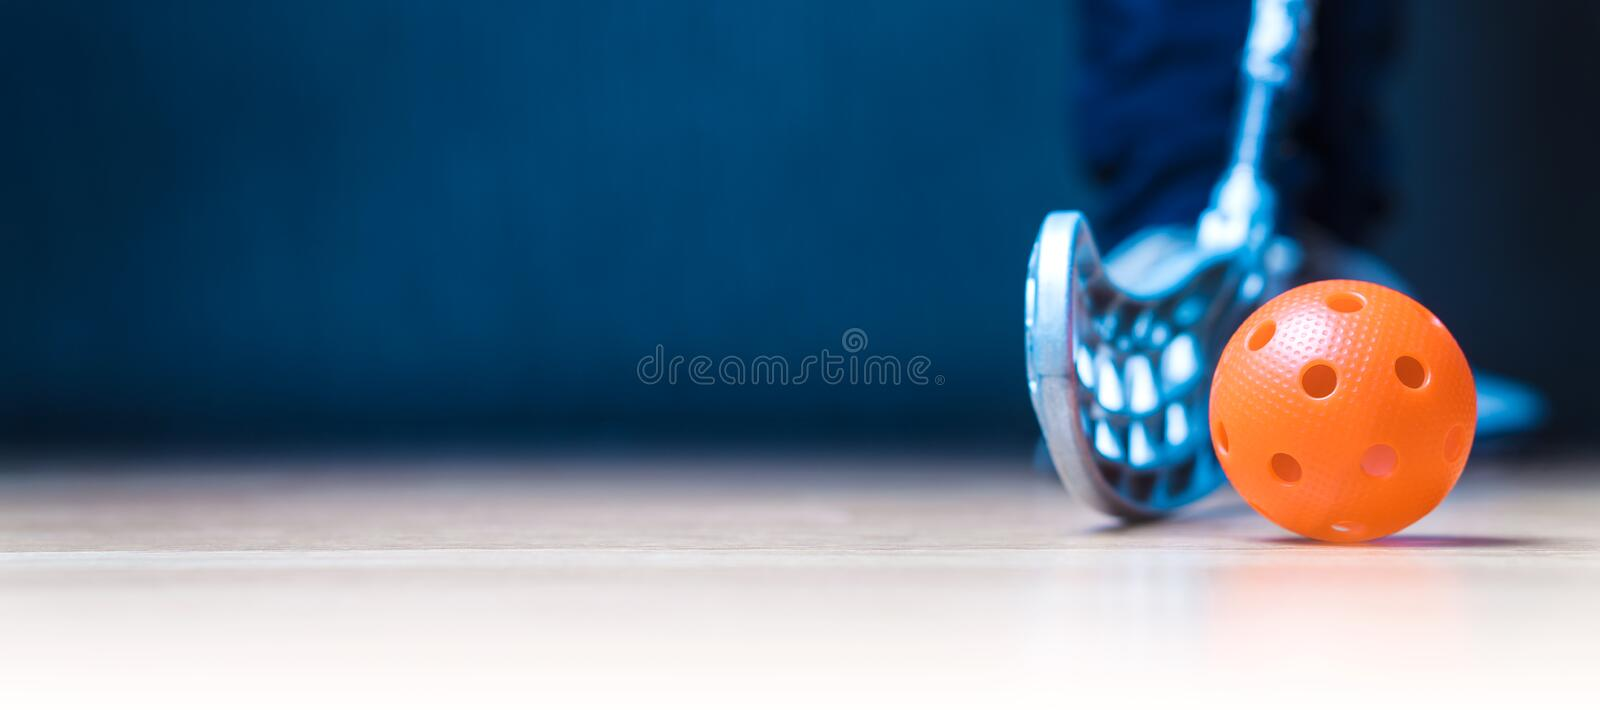 Floorball banner with ball, stick and player. Floor hockey concept. Negative copy space stock photography